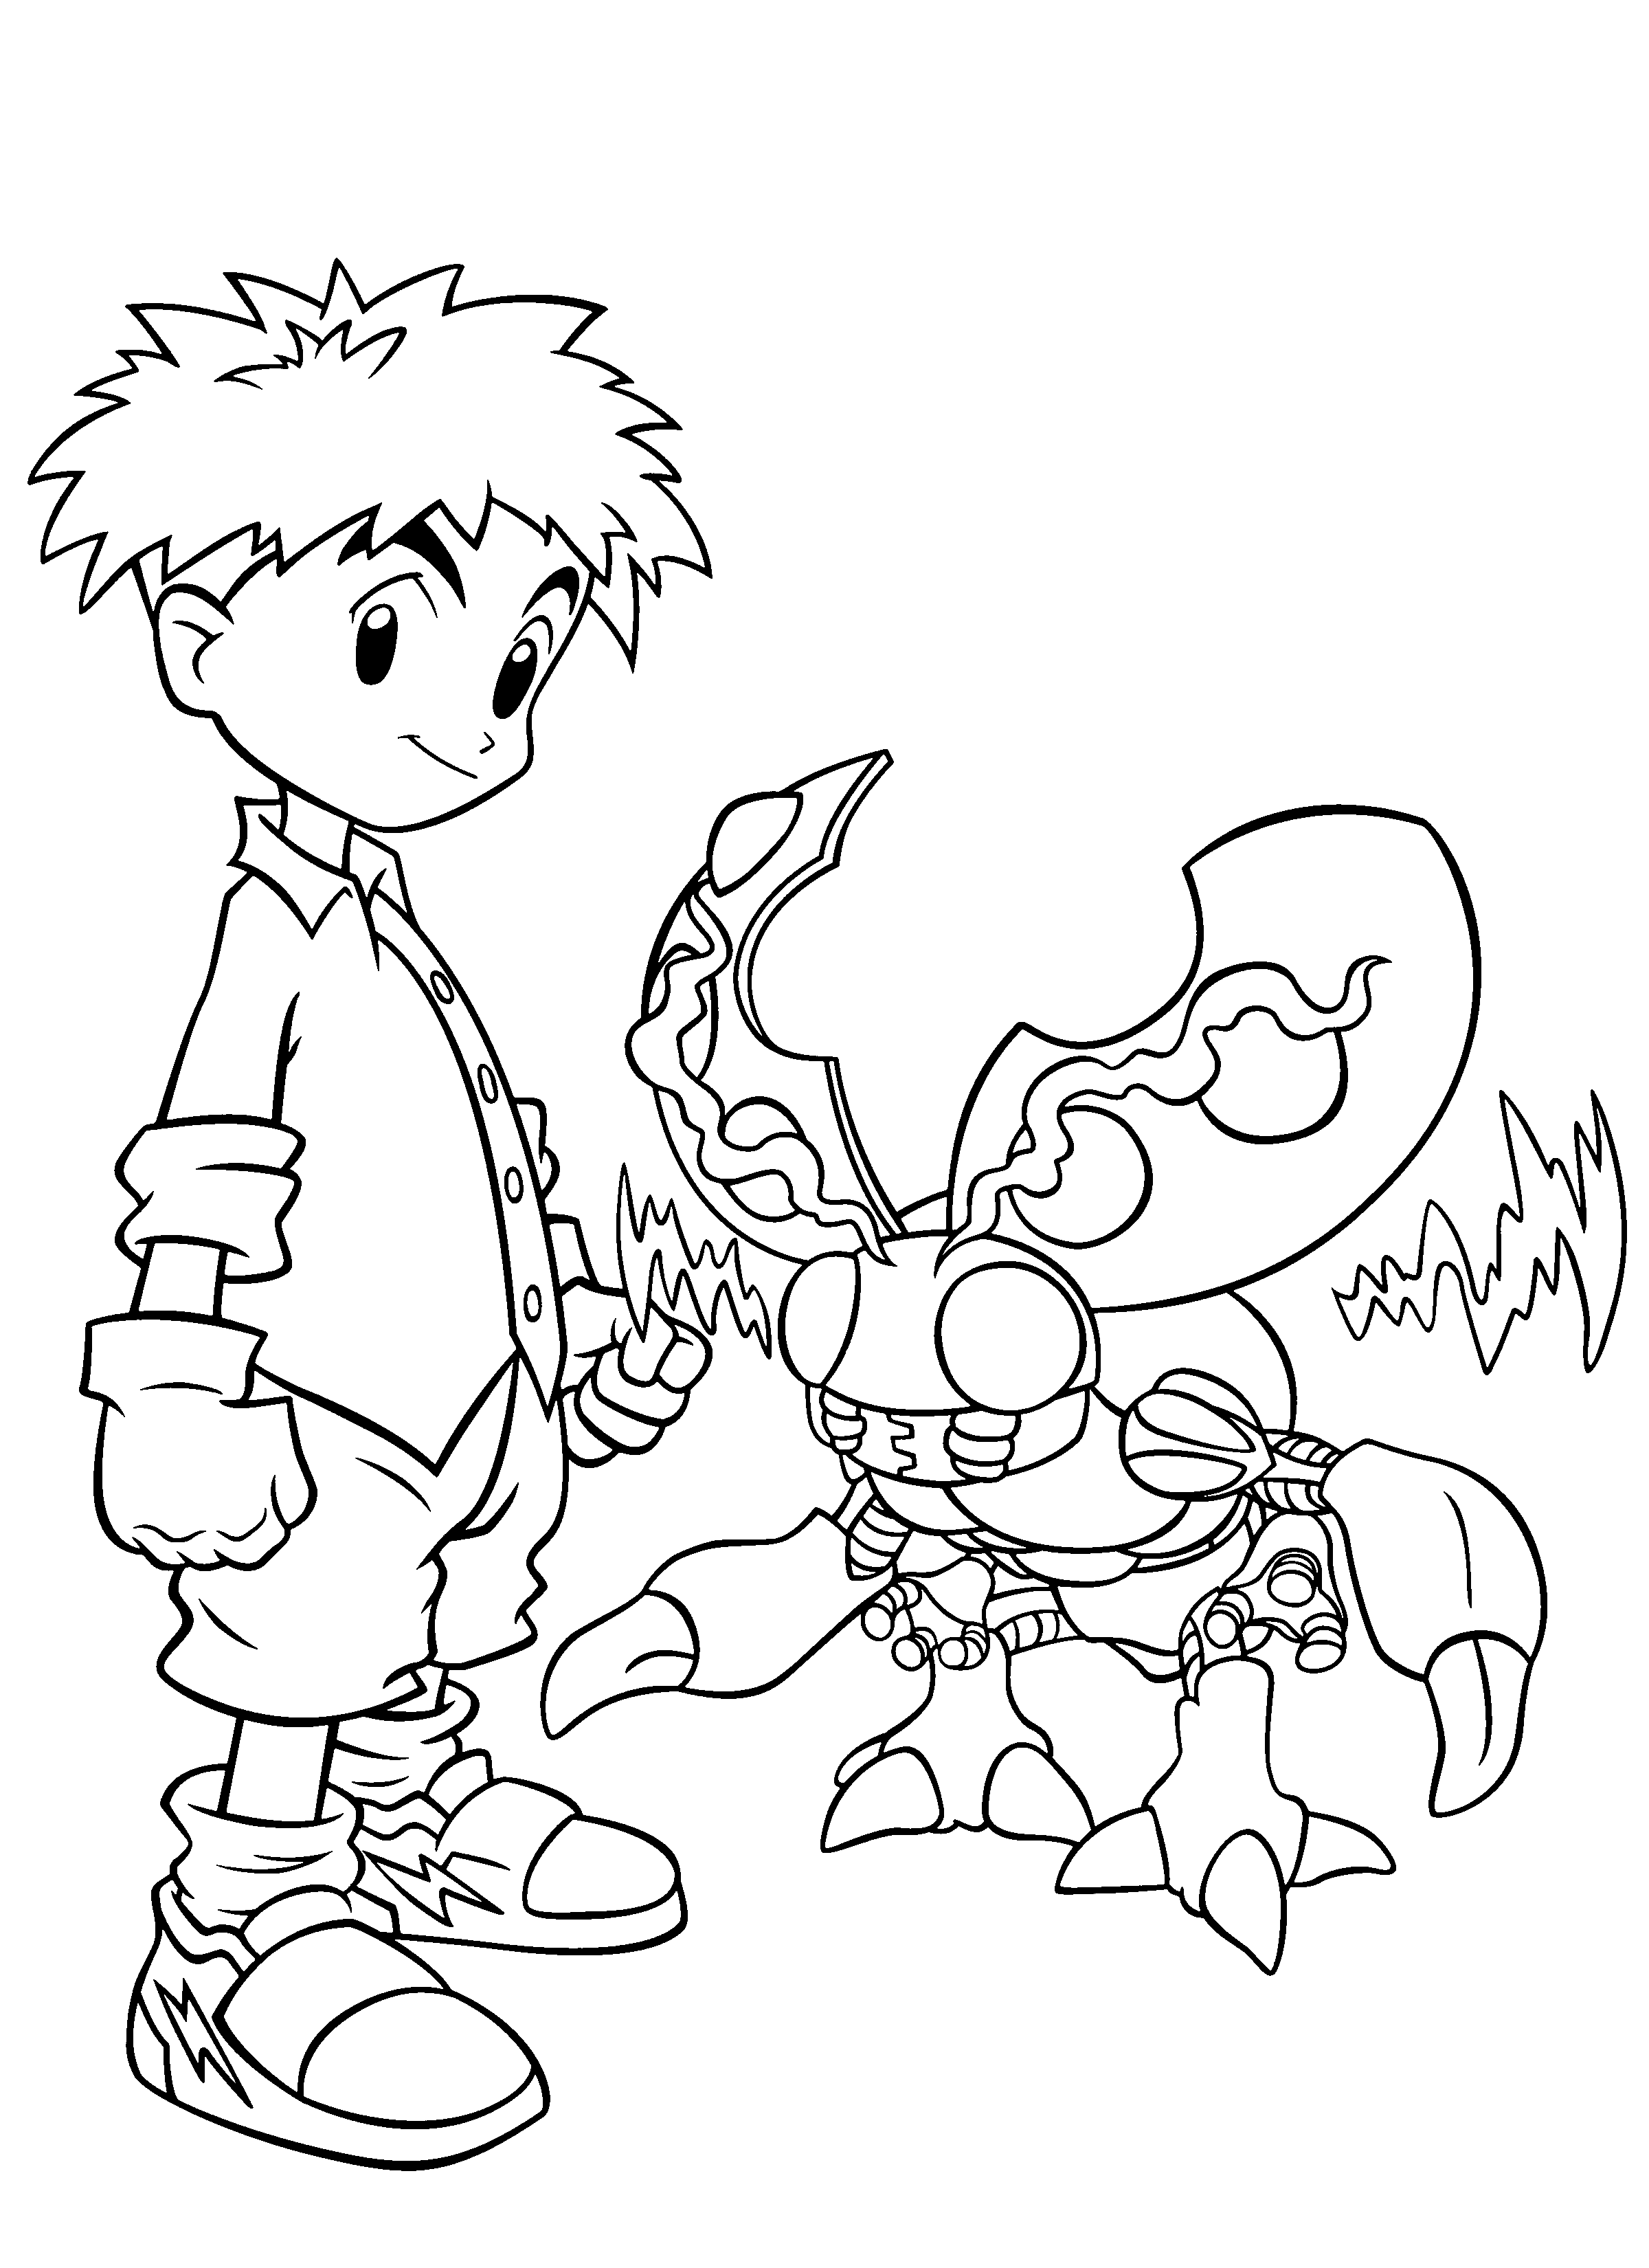 free coloring pages of children - photo#8